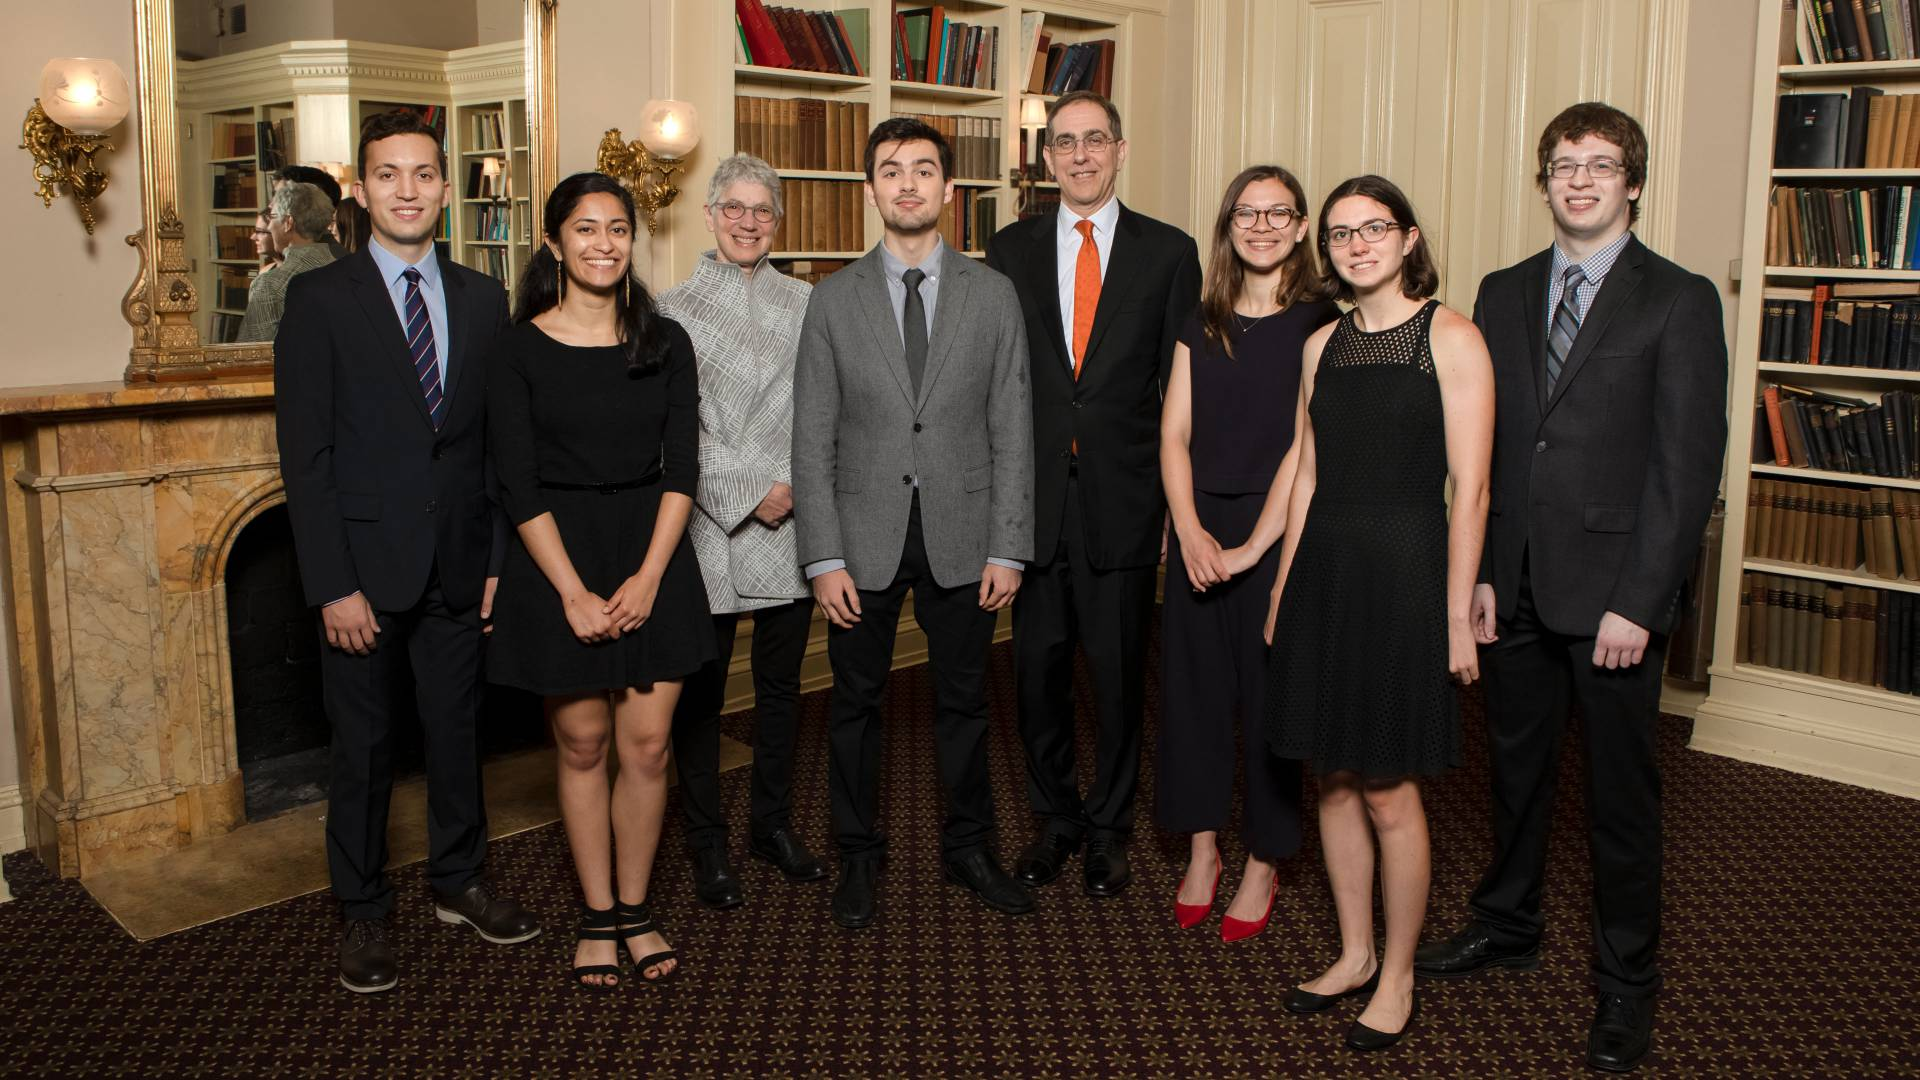 Markos Markakis, Trisha Datta, Dean of the College Jill Dolan, Devon Wood-Thomas, President Christopher L. Eisgruber,  Annabel Barry, Grace Sommers and Matthew Tyler